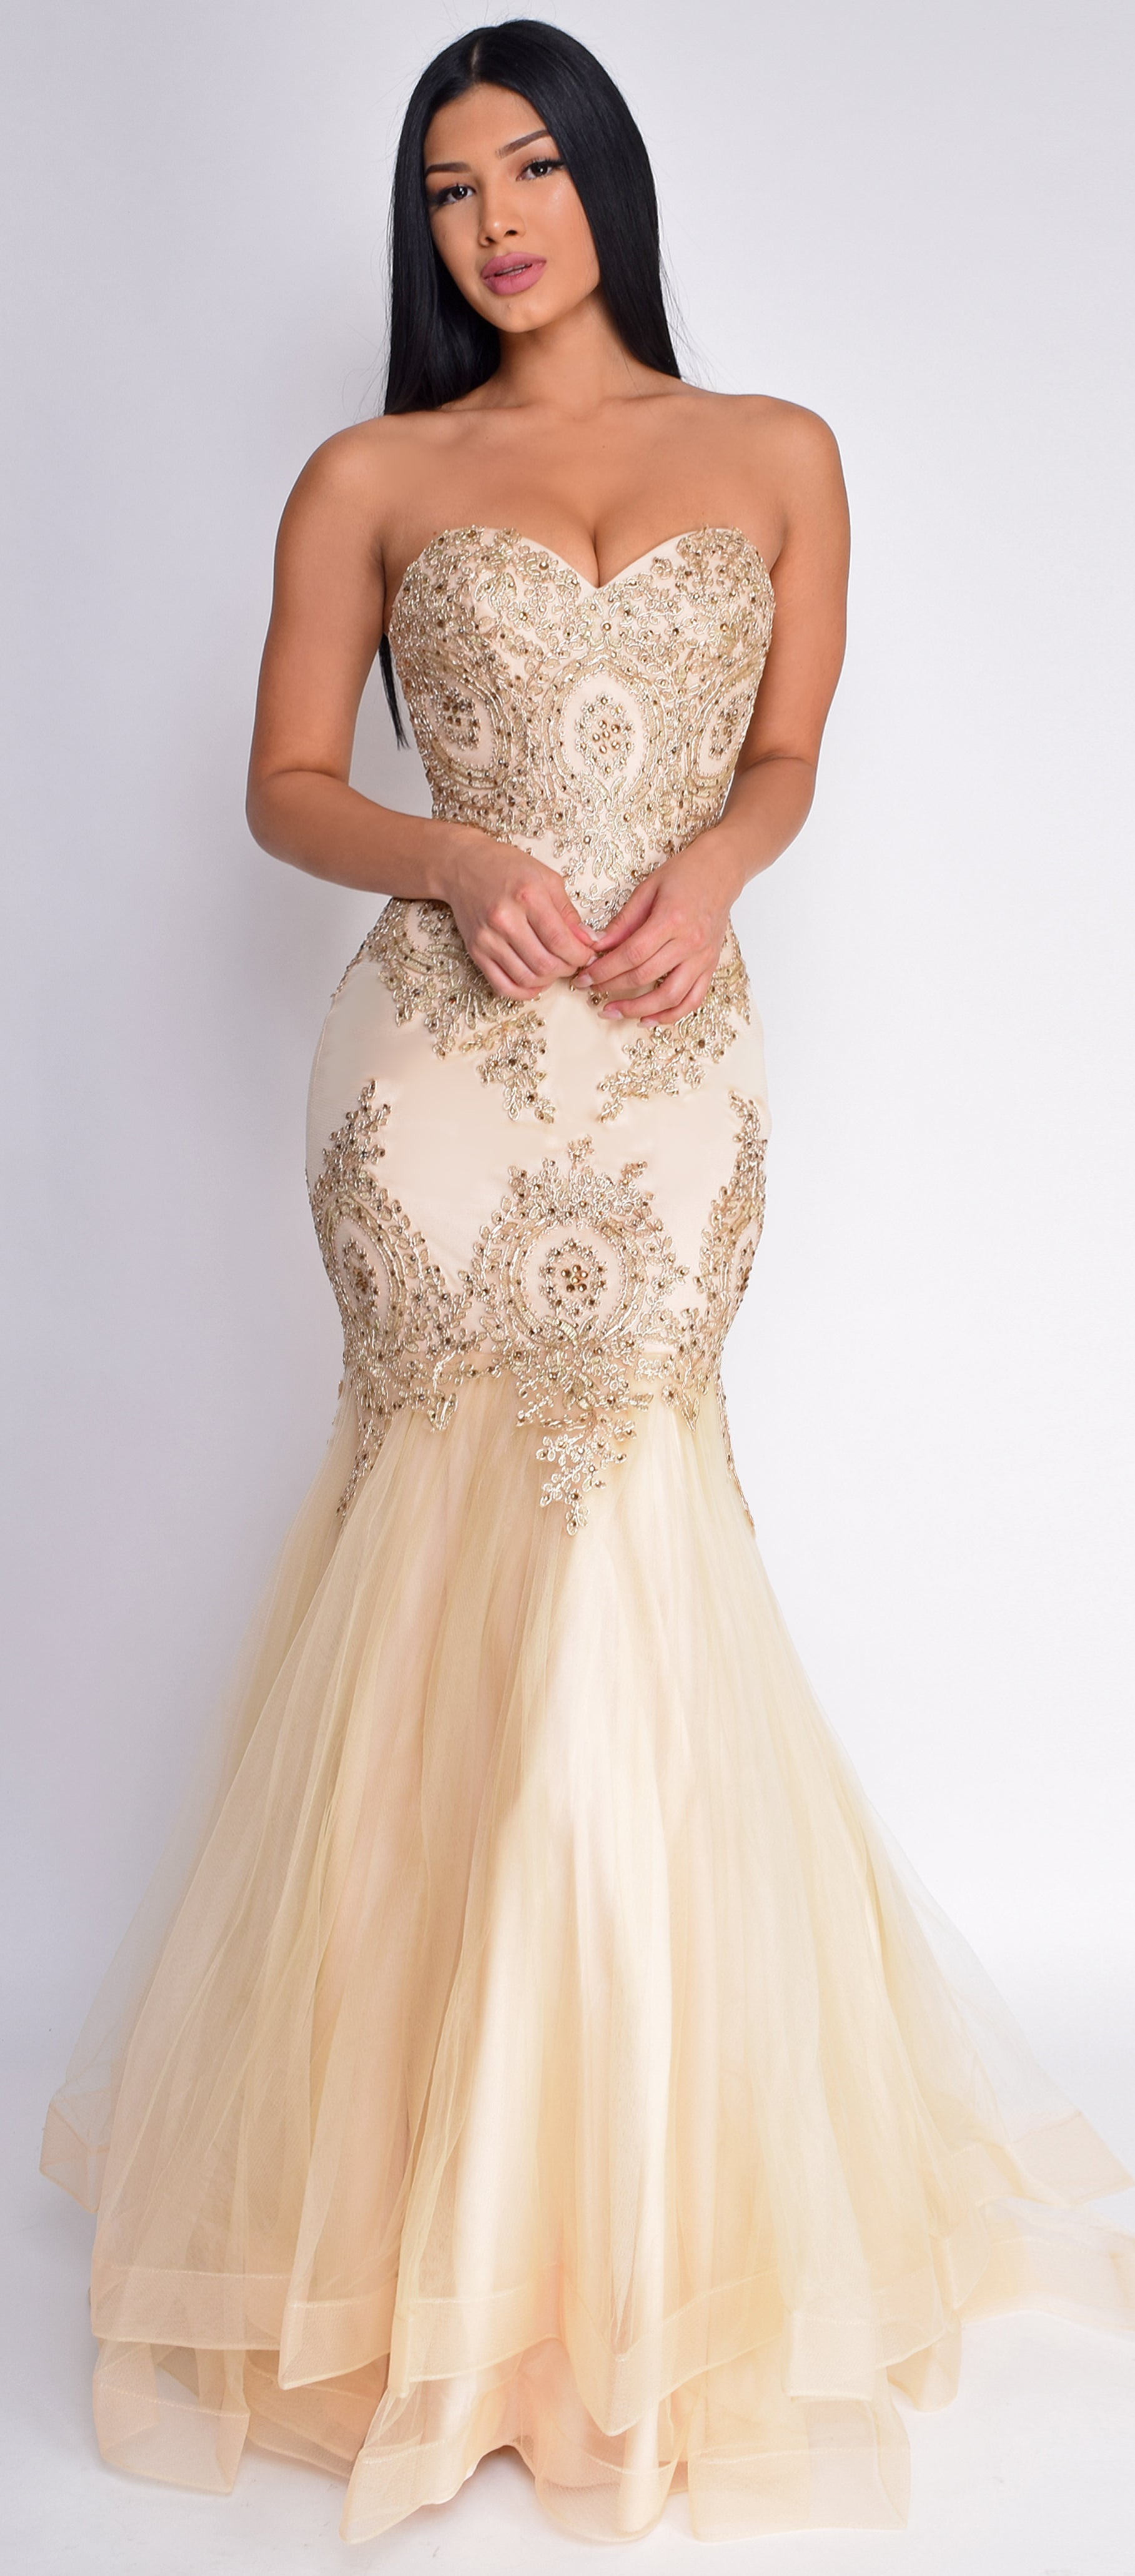 Ambra Champagne Gold Embellished Gown